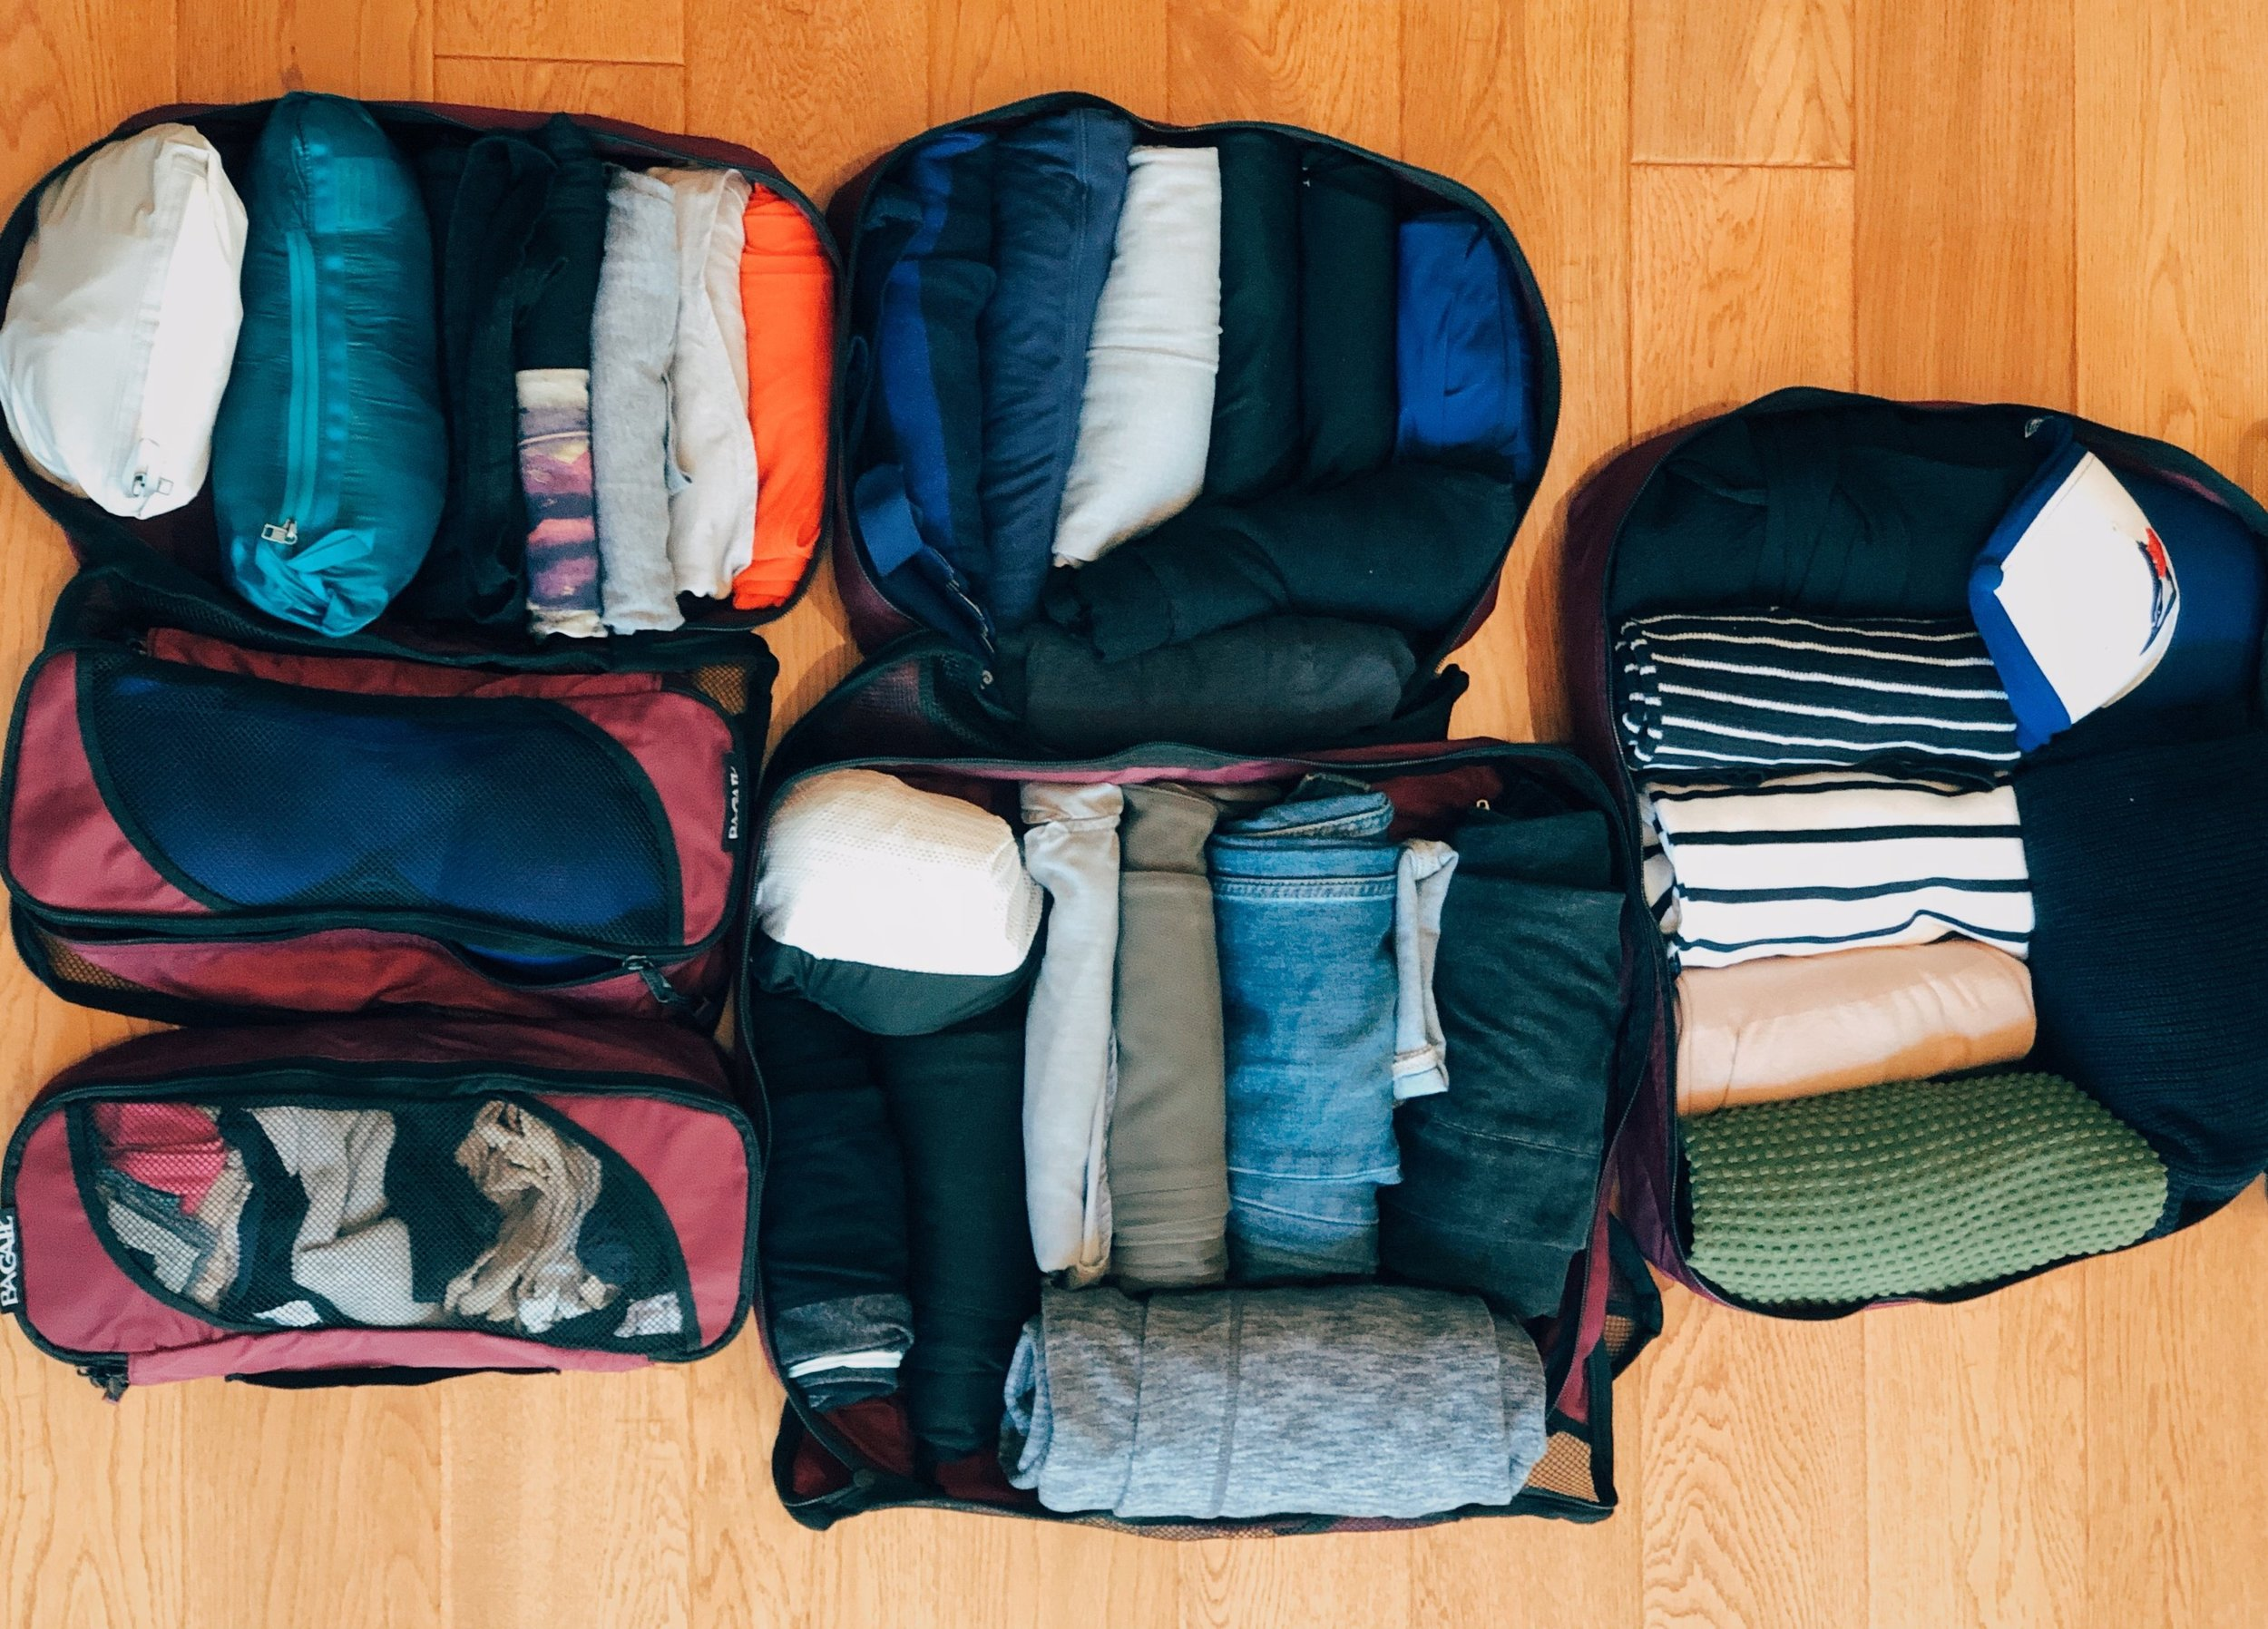 Packing cubes for organization. #packinglist #peru #packinglistforperu